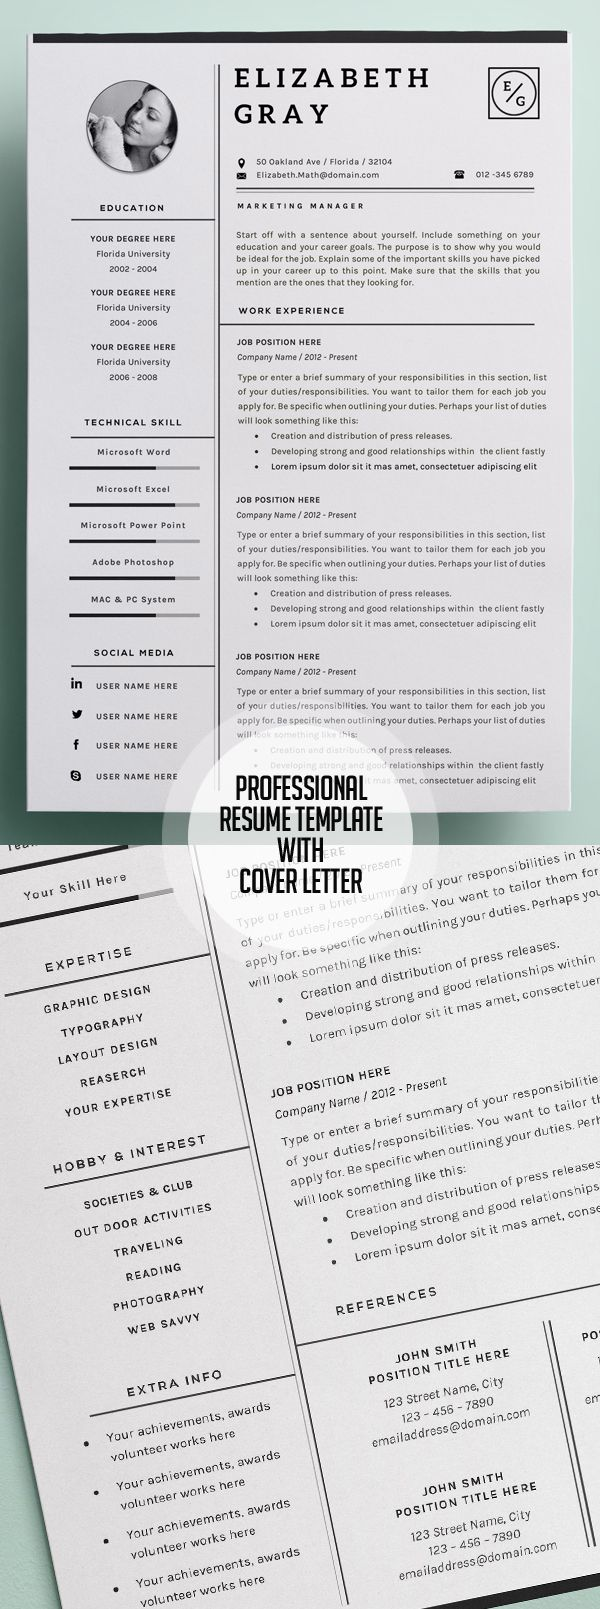 Opposenewapstandardsus  Stunning  Resume Ideas On Pinterest  Resume Resume Templates And  With Exciting Professional And Modern Resume Template With Page Cover Cvtemplate With Astounding Investment Banking Analyst Resume Also Sales Associate Skills Resume In Addition List Of Qualifications For Resume And Margins For A Resume As Well As Resume Samples Skills Additionally Examples Of A Cover Letter For Resume From Pinterestcom With Opposenewapstandardsus  Exciting  Resume Ideas On Pinterest  Resume Resume Templates And  With Astounding Professional And Modern Resume Template With Page Cover Cvtemplate And Stunning Investment Banking Analyst Resume Also Sales Associate Skills Resume In Addition List Of Qualifications For Resume From Pinterestcom